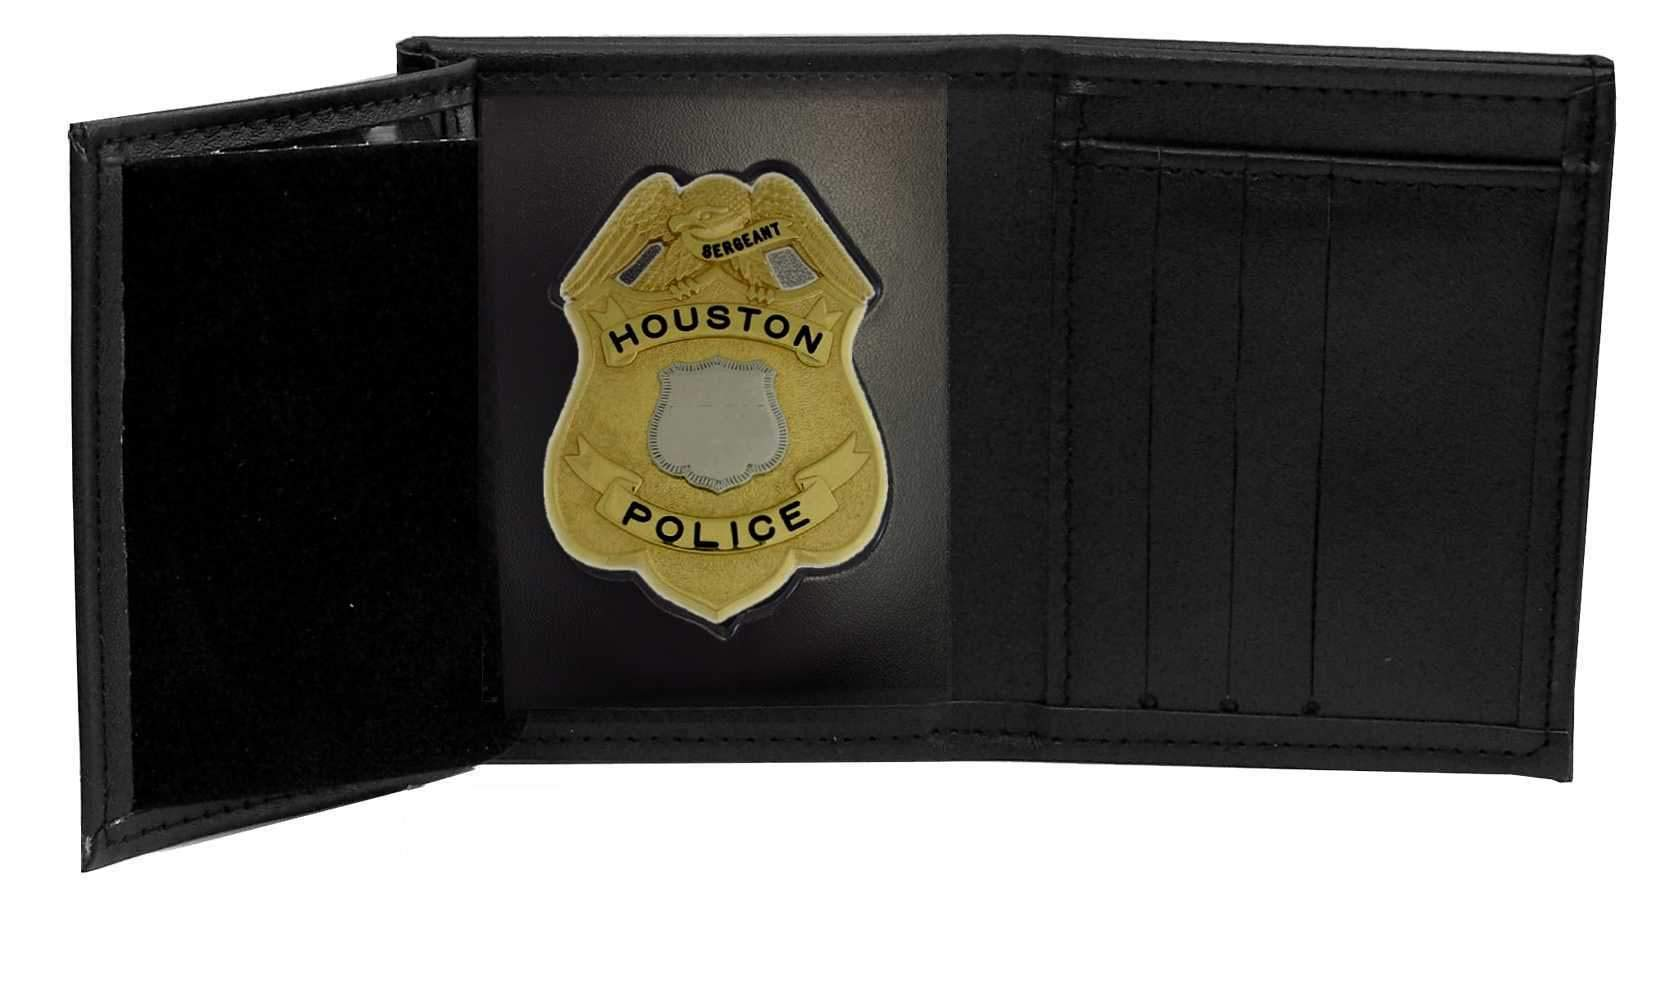 Houston Police Supervisor Recessed Badge Wallet (Cutout DK351, 3.16 inches tall)